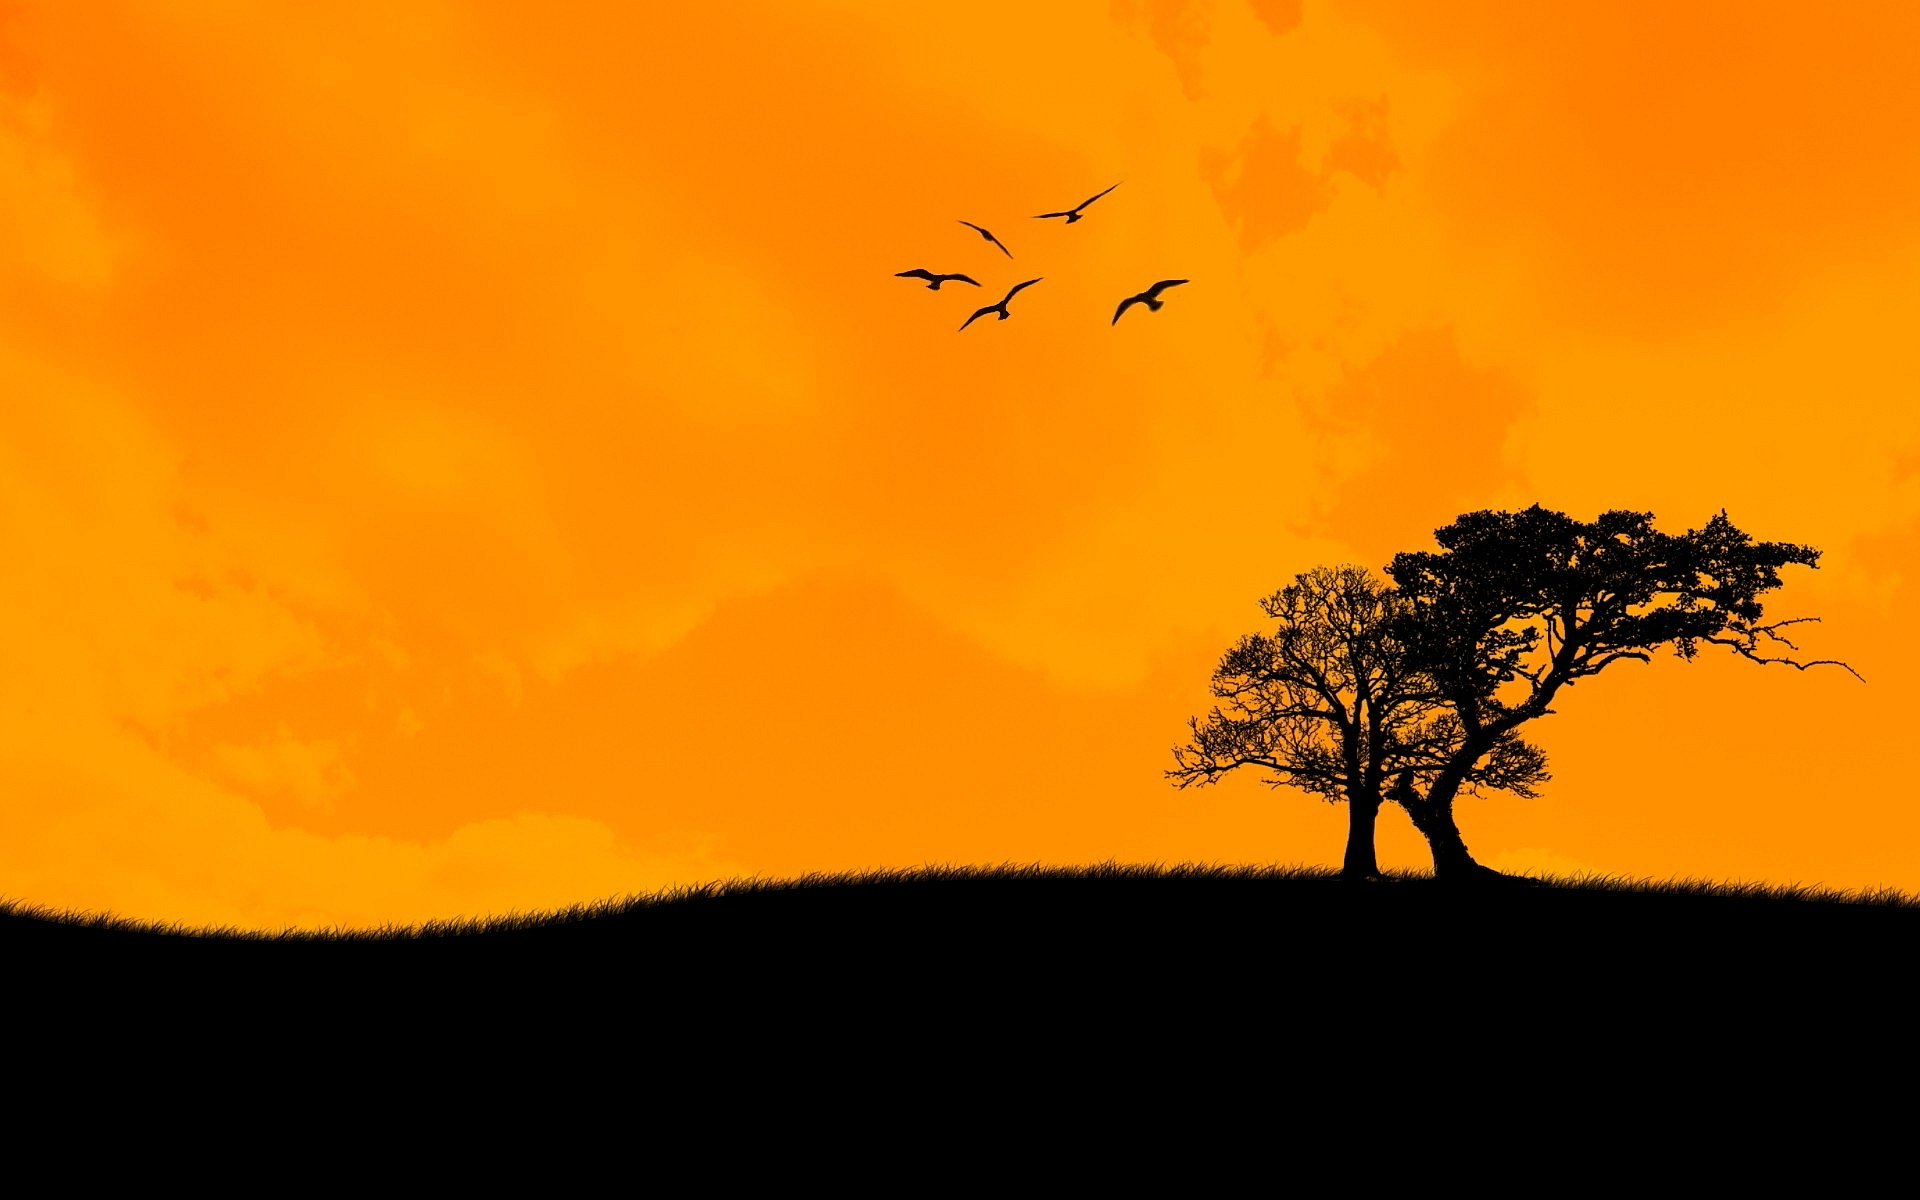 Sunset Art Background